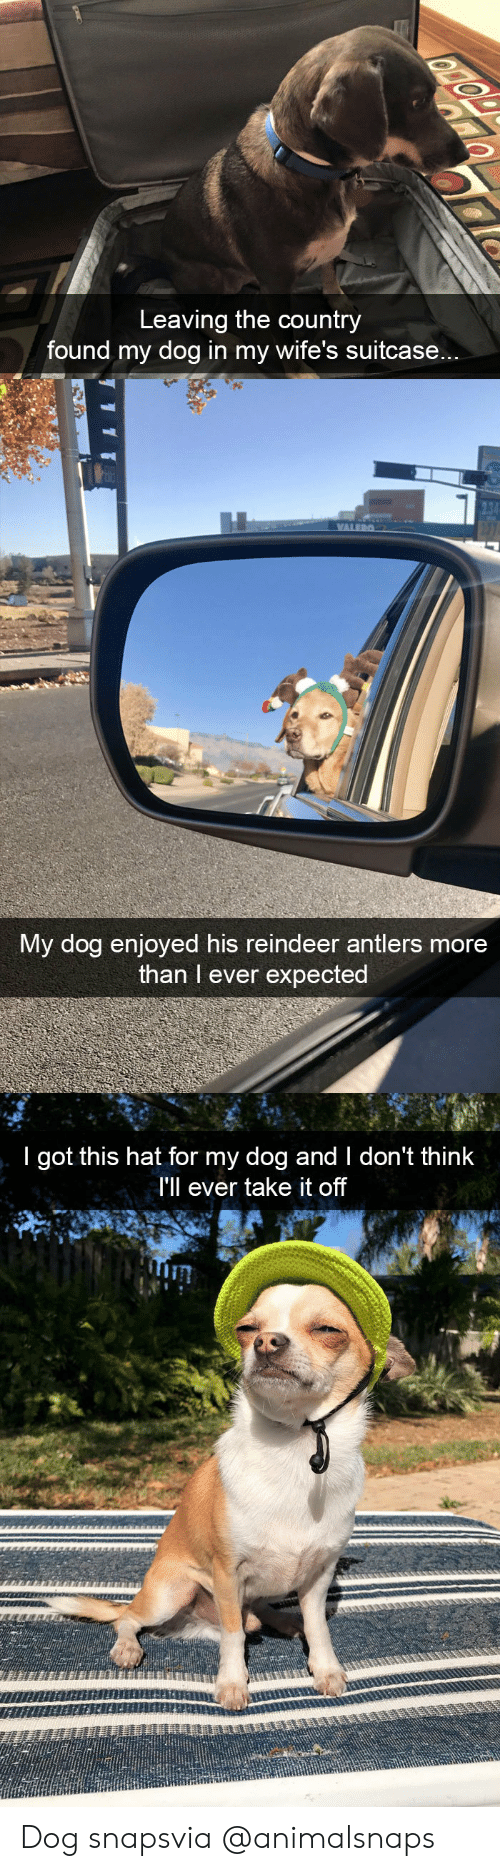 Target, Tumblr, and Http: Leaving the country  found my dog in my wife's suitcase...   My dog enjoyed his reindeer antlers more  than I ever expected   I got this hat for my dog and I don't think  I'll ever take it off  Tin Dog snapsvia @animalsnaps